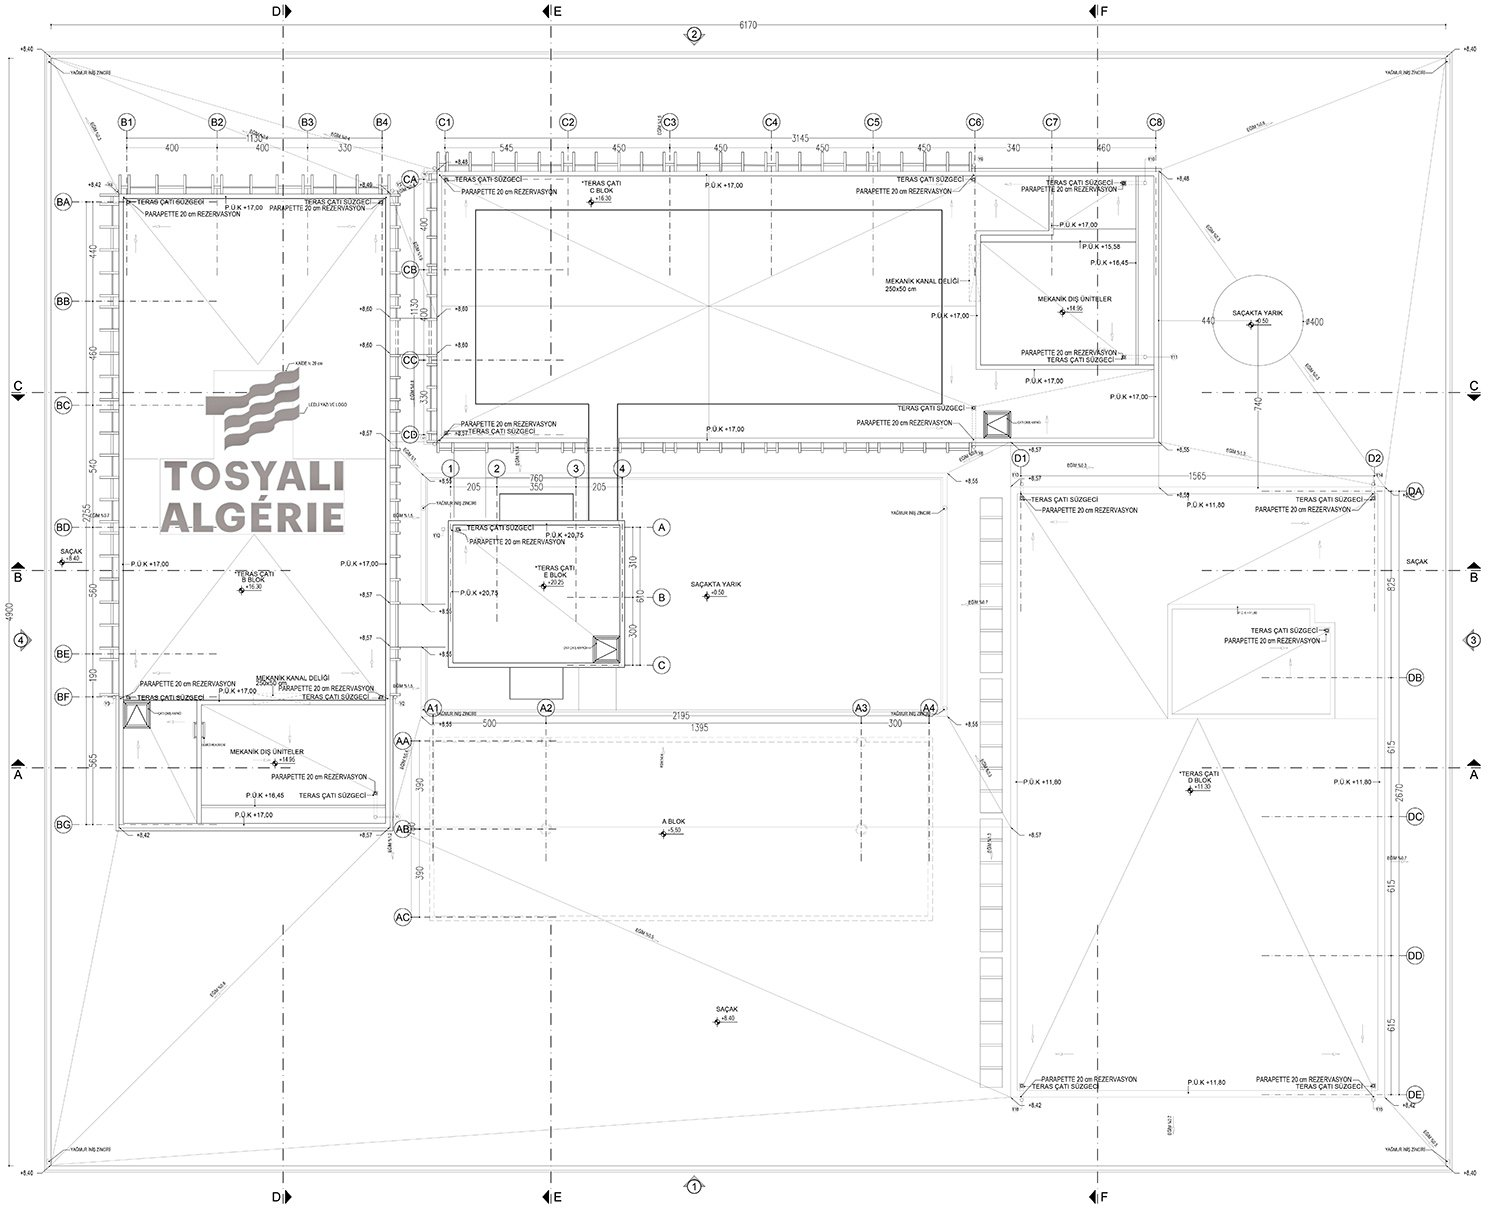 Tosyali Holding Company HQ's drawing }